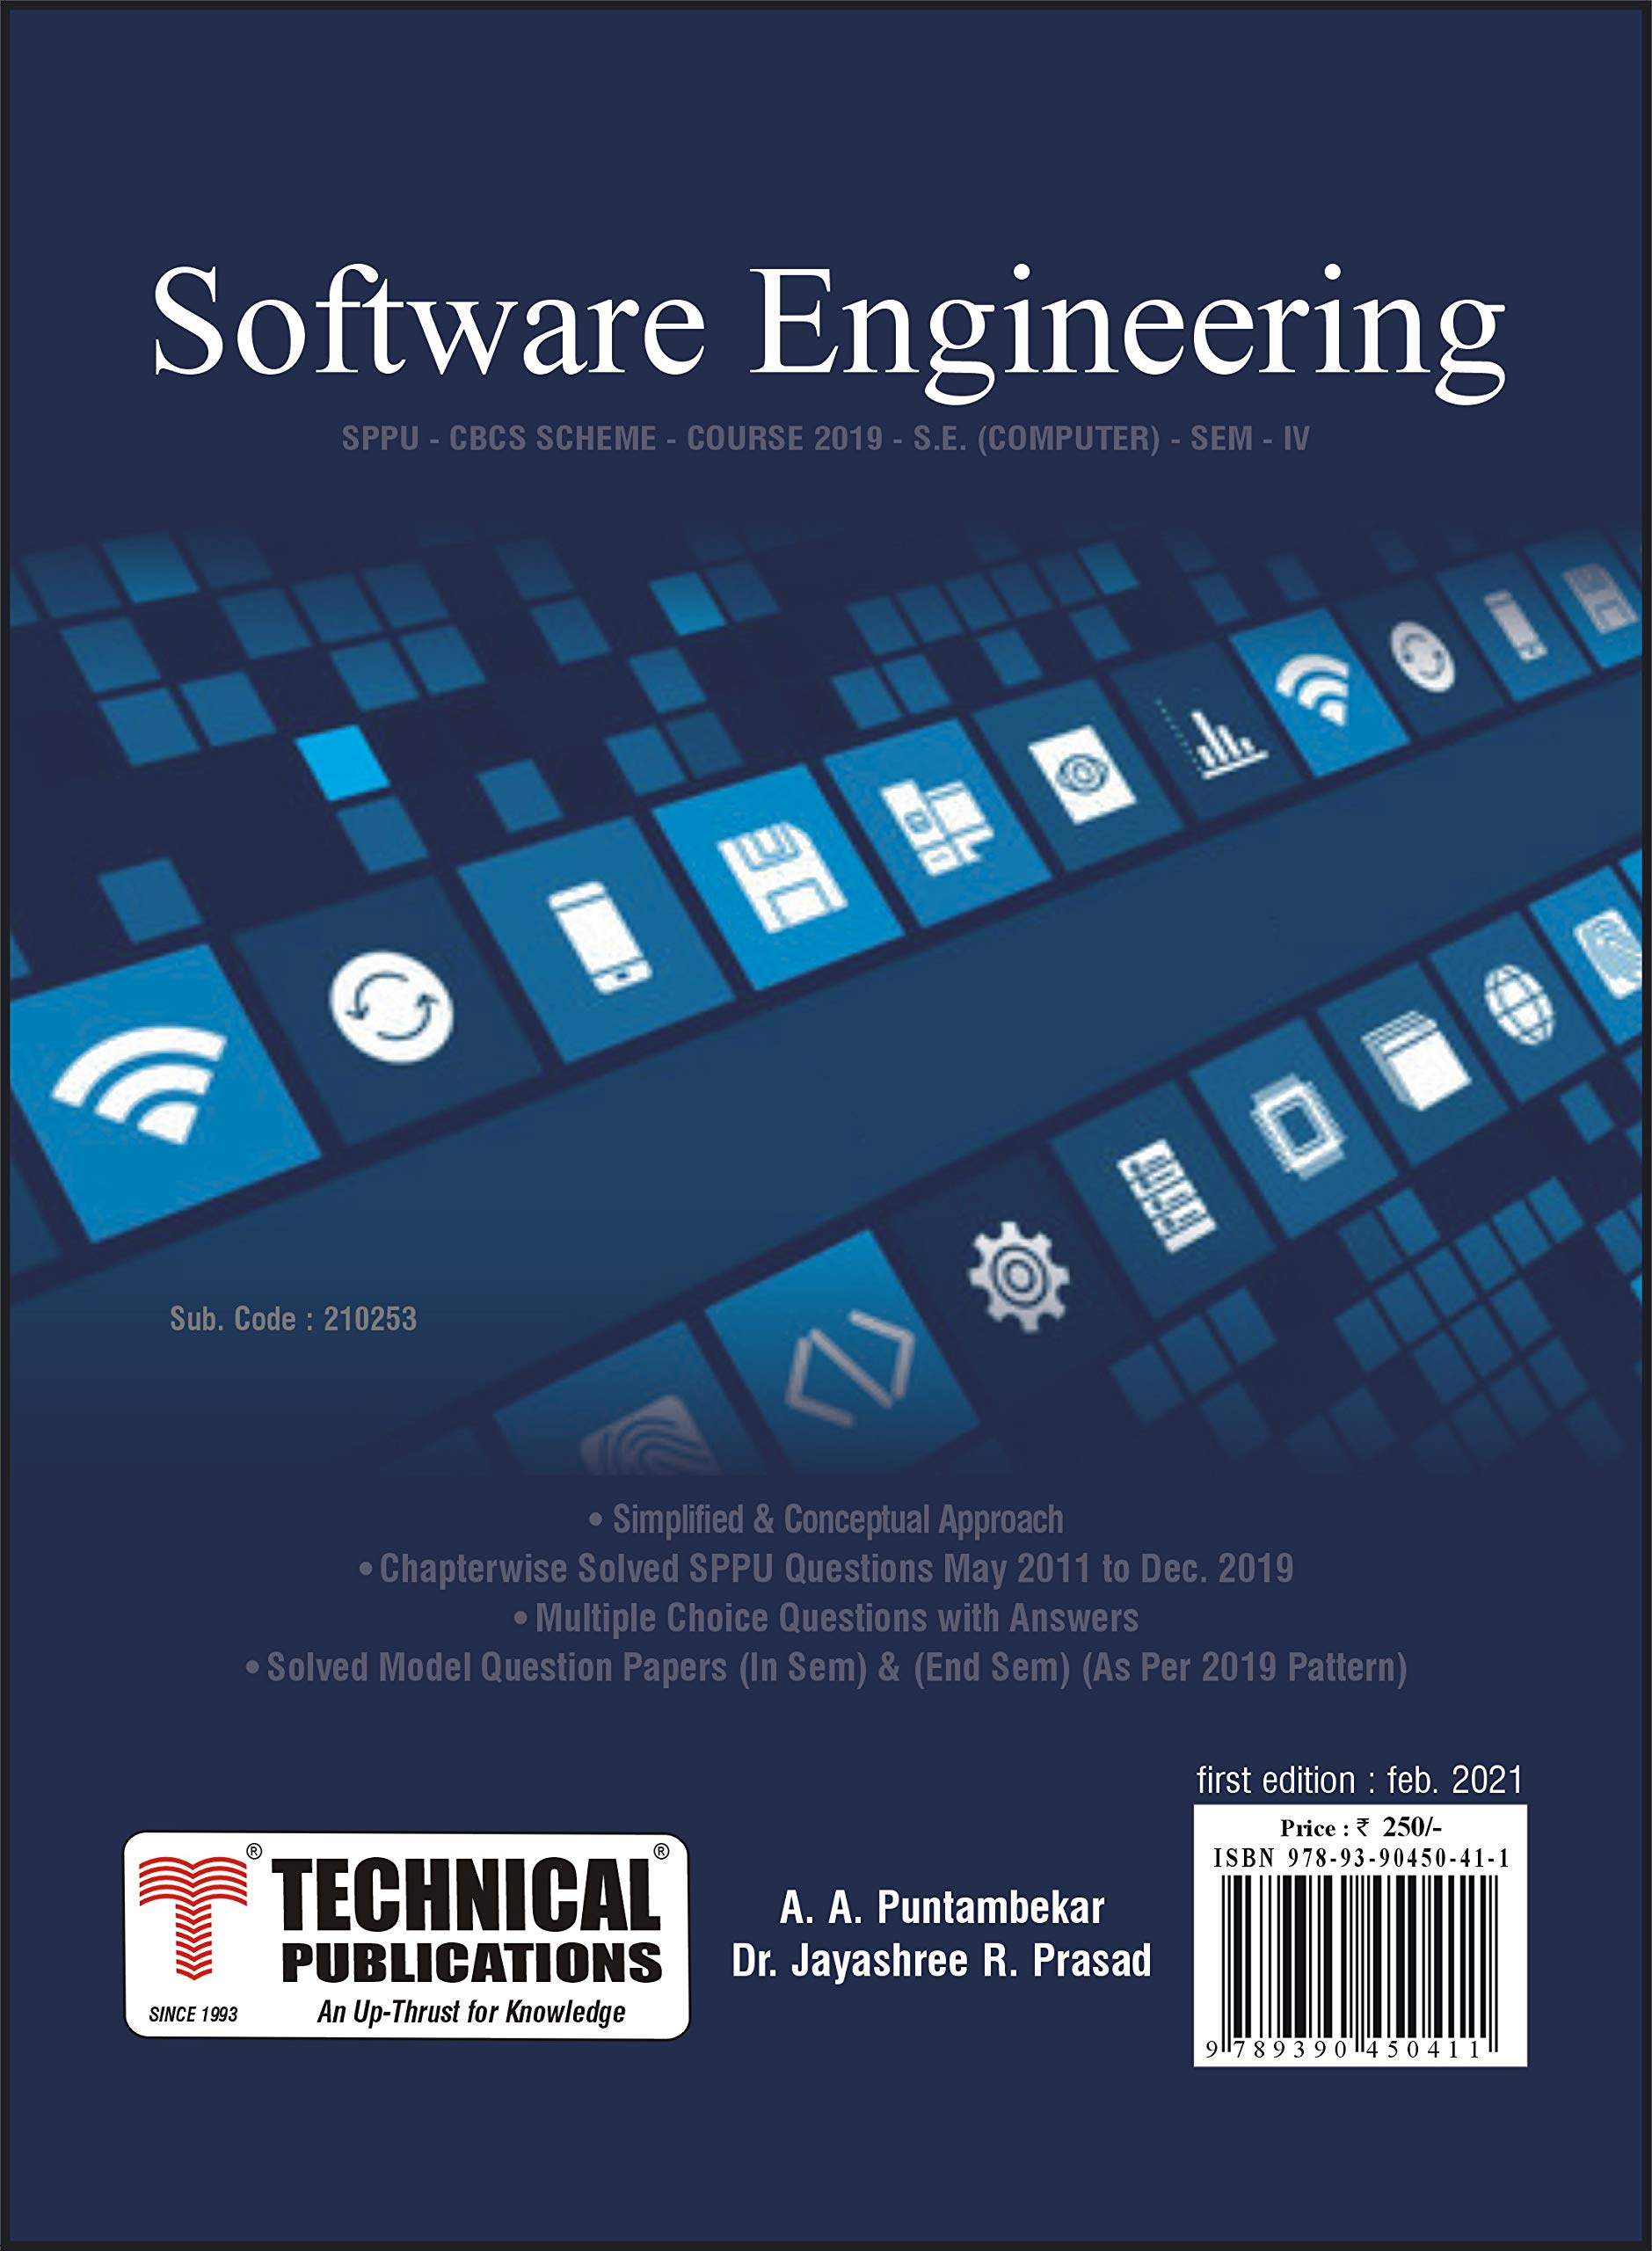 Software Engineering for SPPU 19 Course (SE - IV - Comp. - 210253)